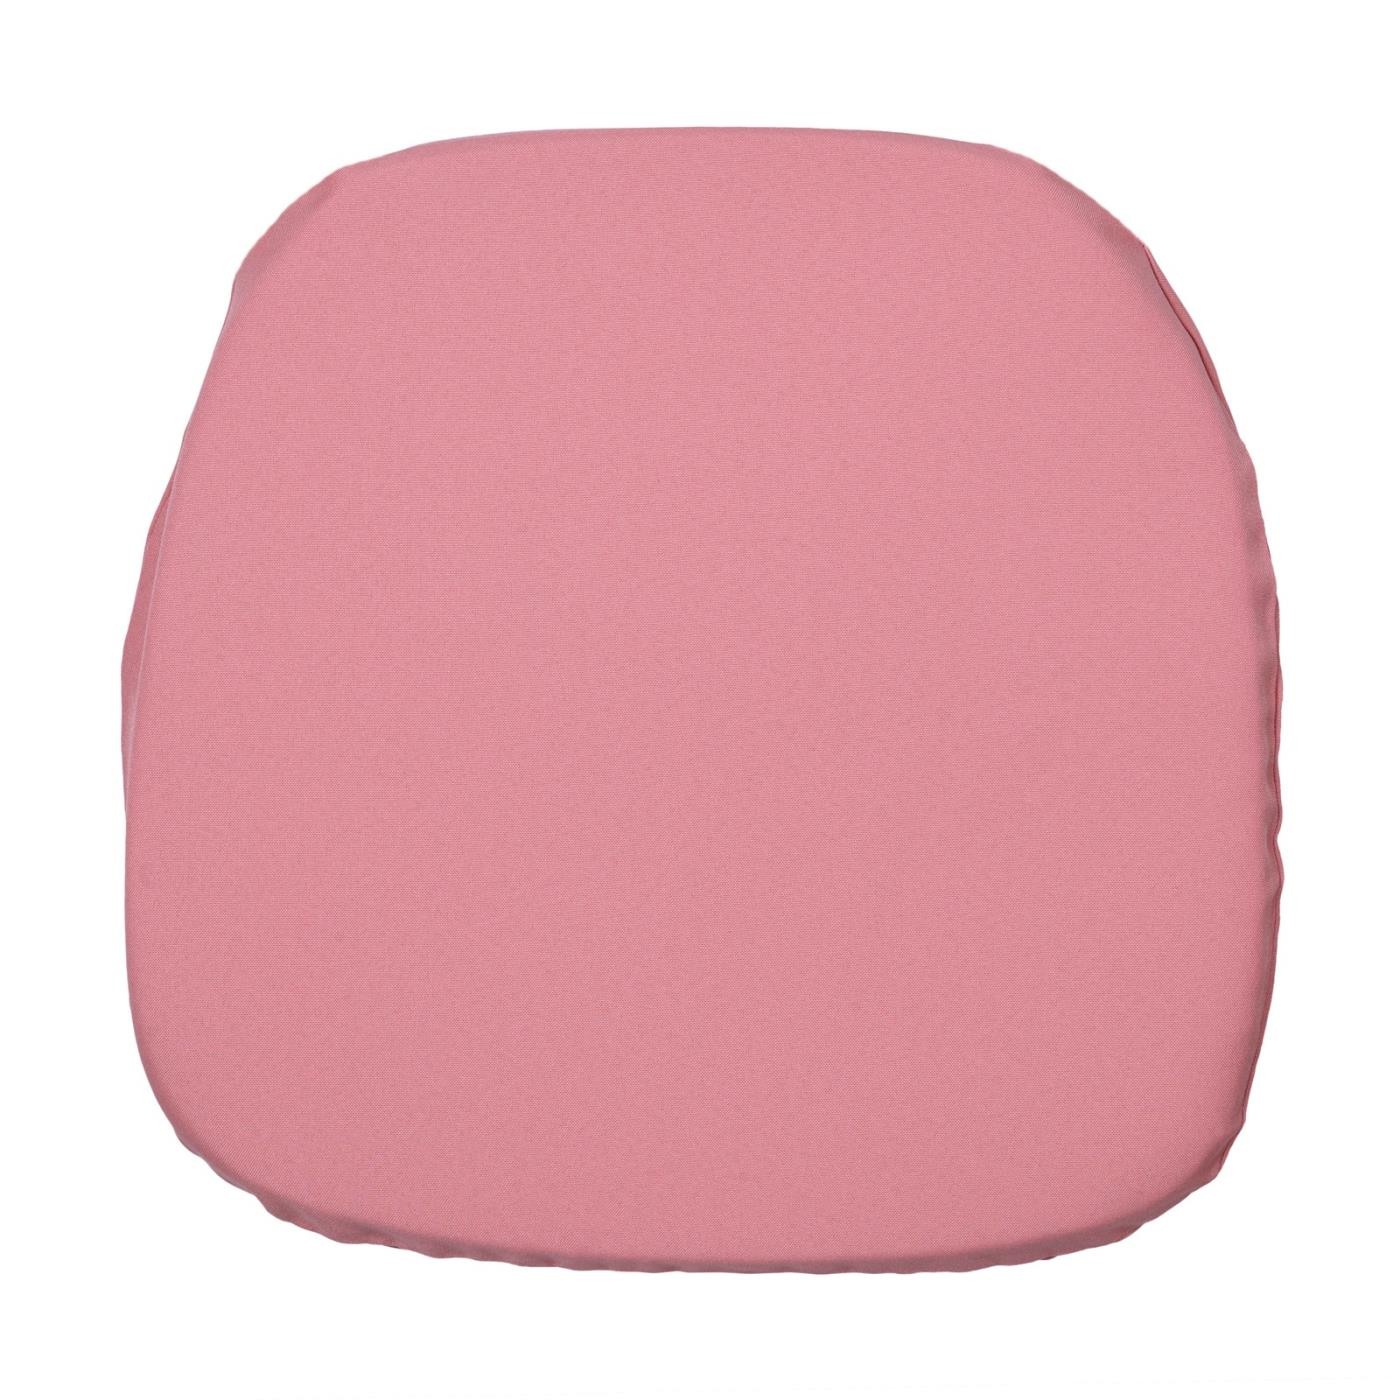 Poly Seat Cushion - Dusty Rose